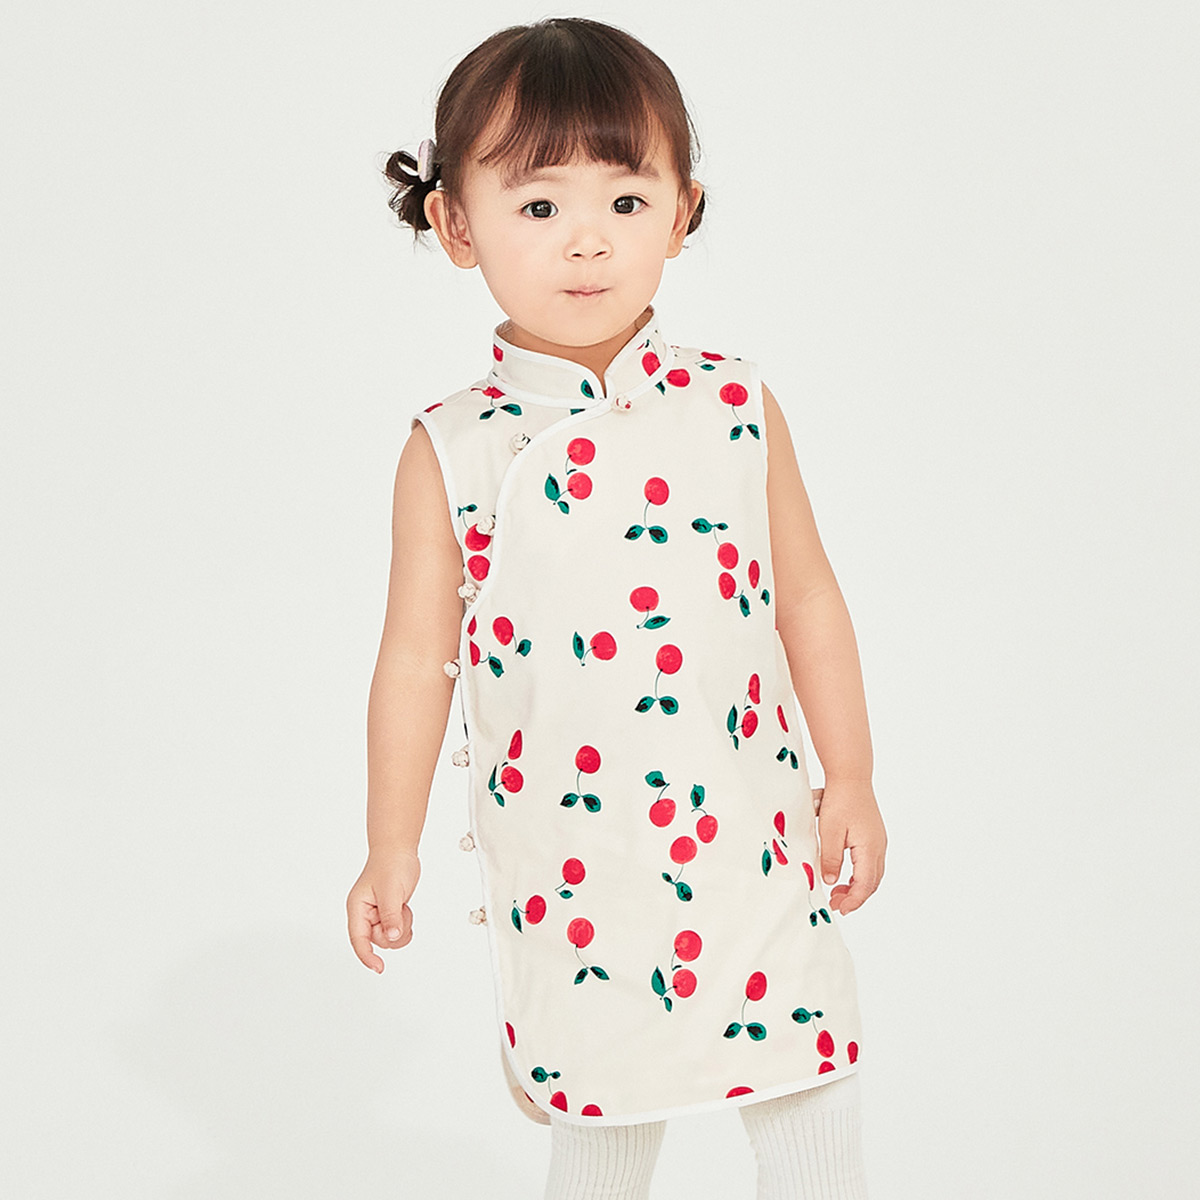 Davi Bella girl dress 2021 new summer children skirt children baby dress Hanfu cheongsam skirt